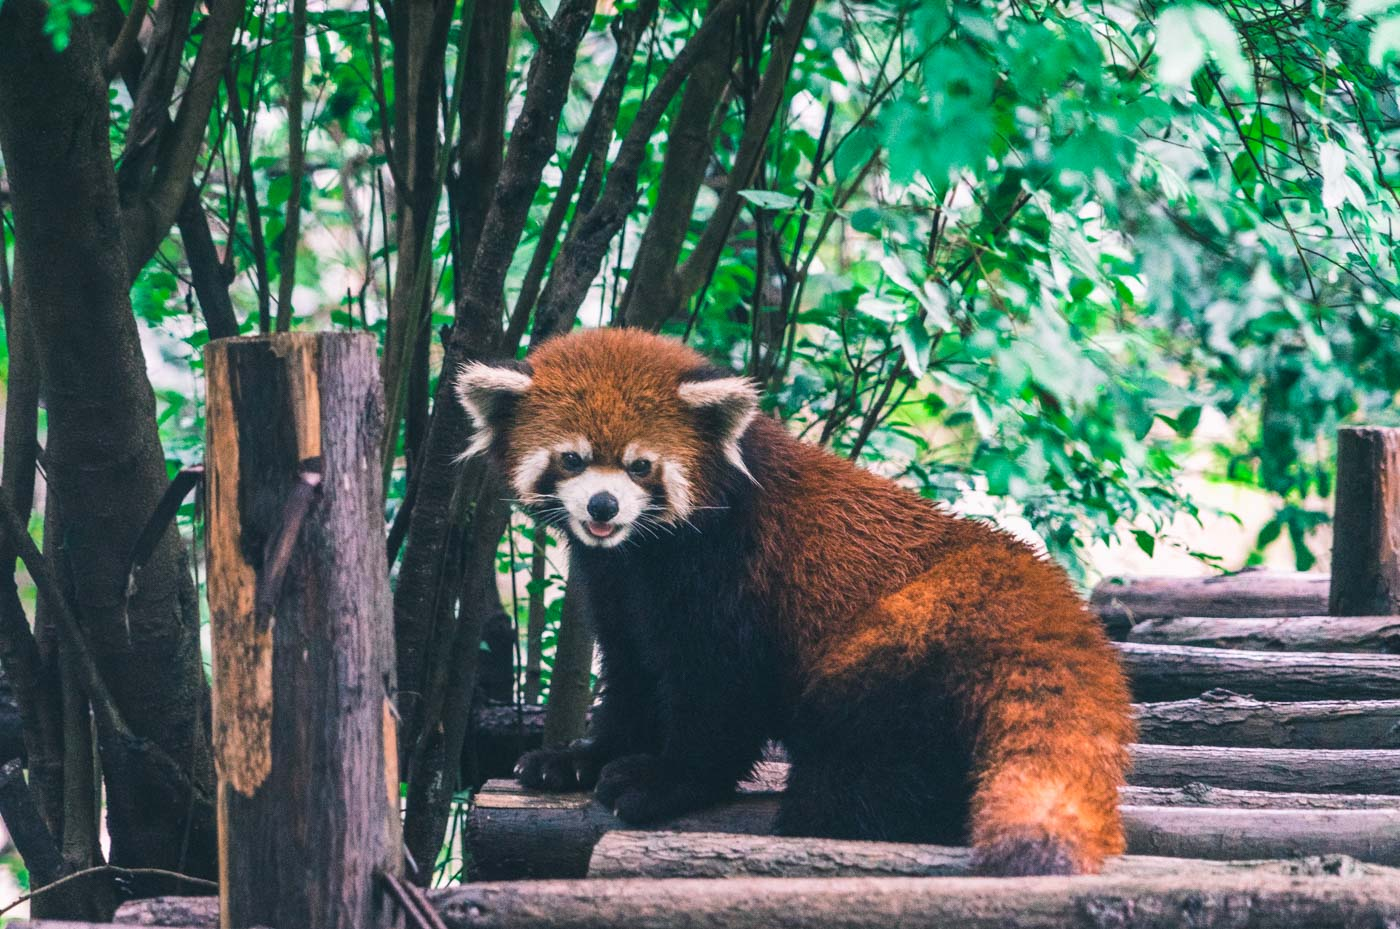 Red panda at the Chengdu Panda Research Centre, Chengdu, China